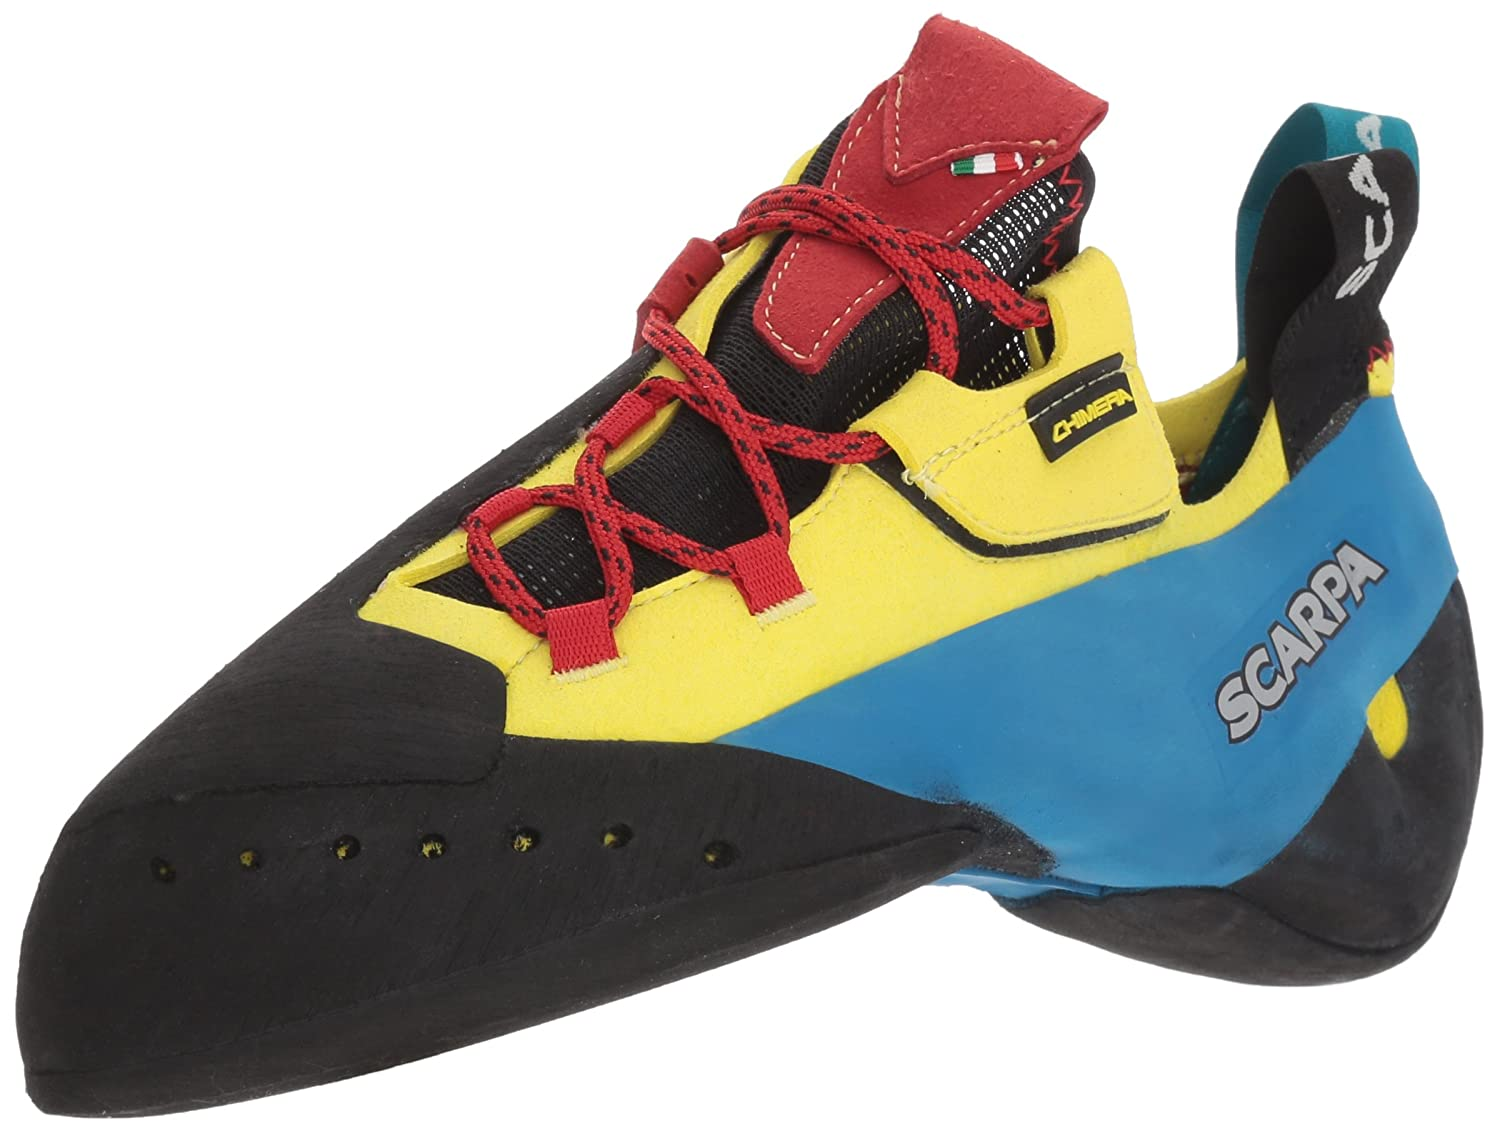 SCARPA Chimera Rock Shoe Climbing SCARPA Chimera Rock Shoe-U